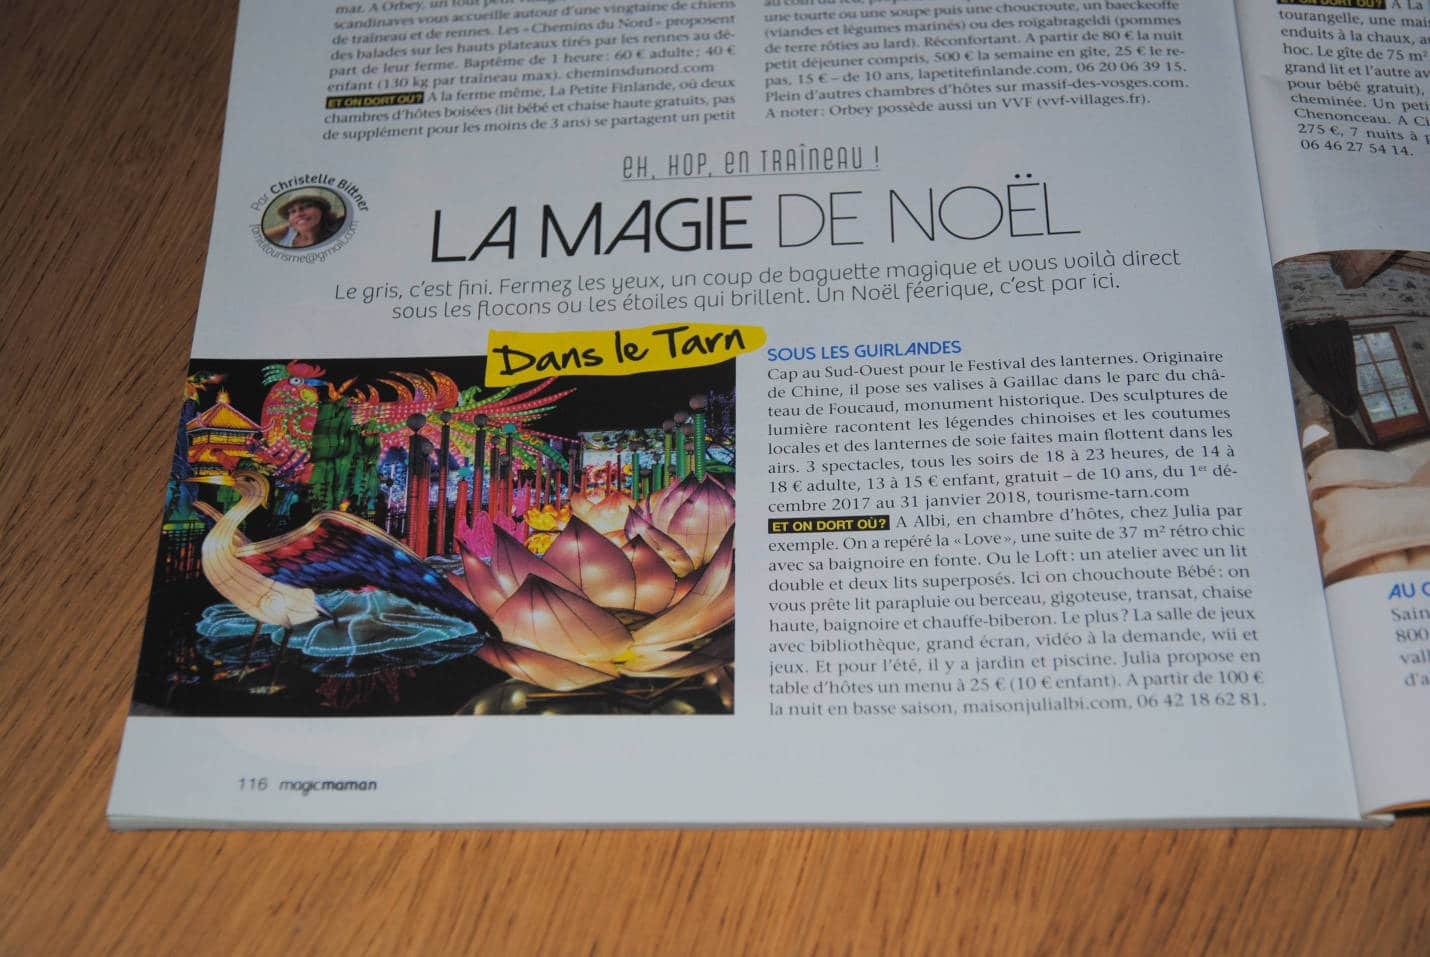 Article du Magazine Magic Maman parlant de la maison de Julia.